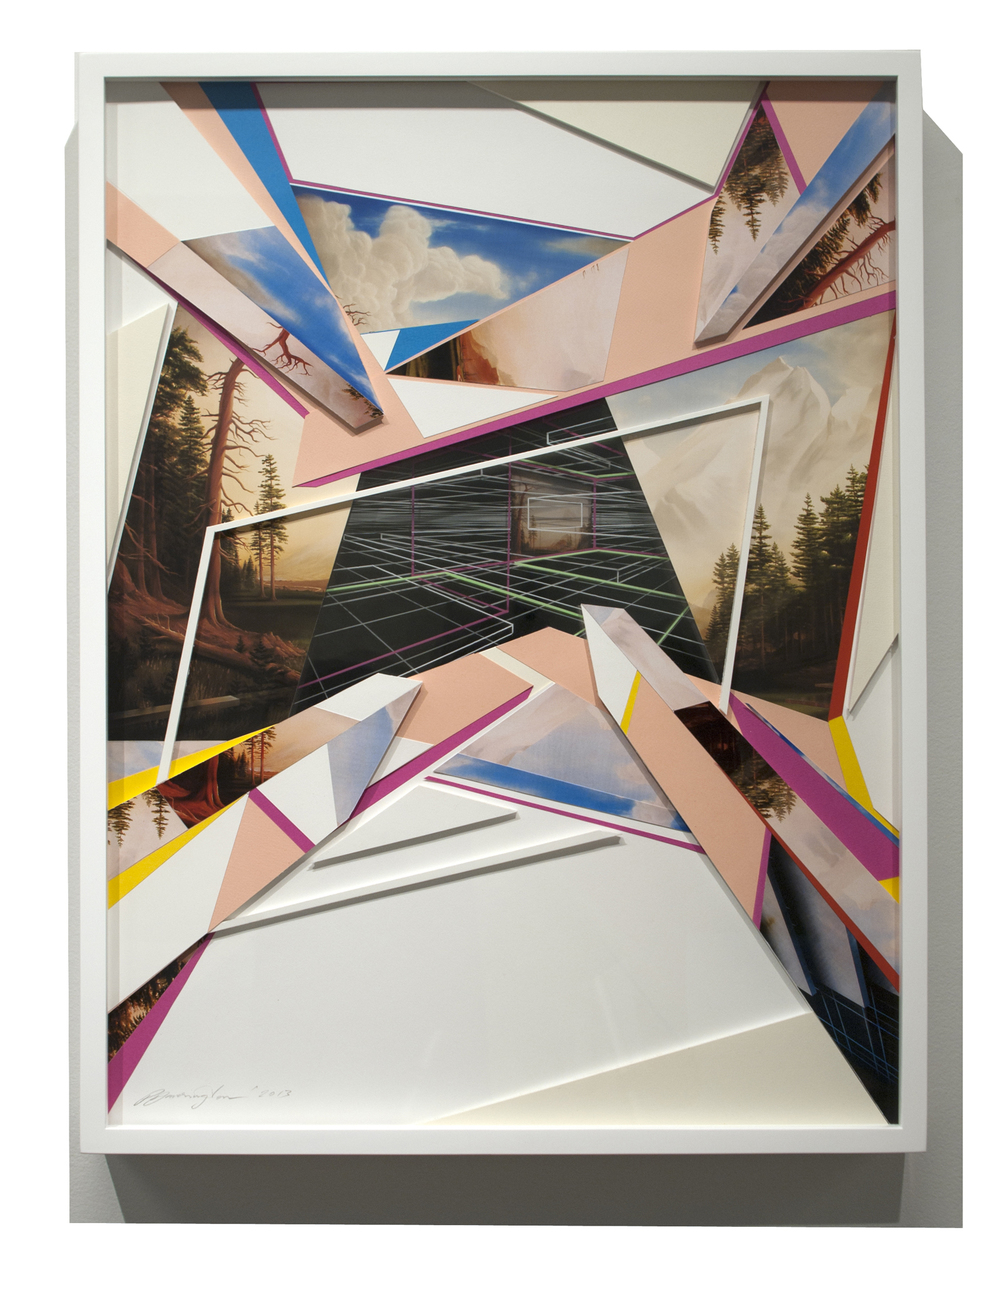 PETER DAVERINGTON     Construction Drawing #1  2013 Paper collage, acetate and marker on foamcore   85 X 64 cm